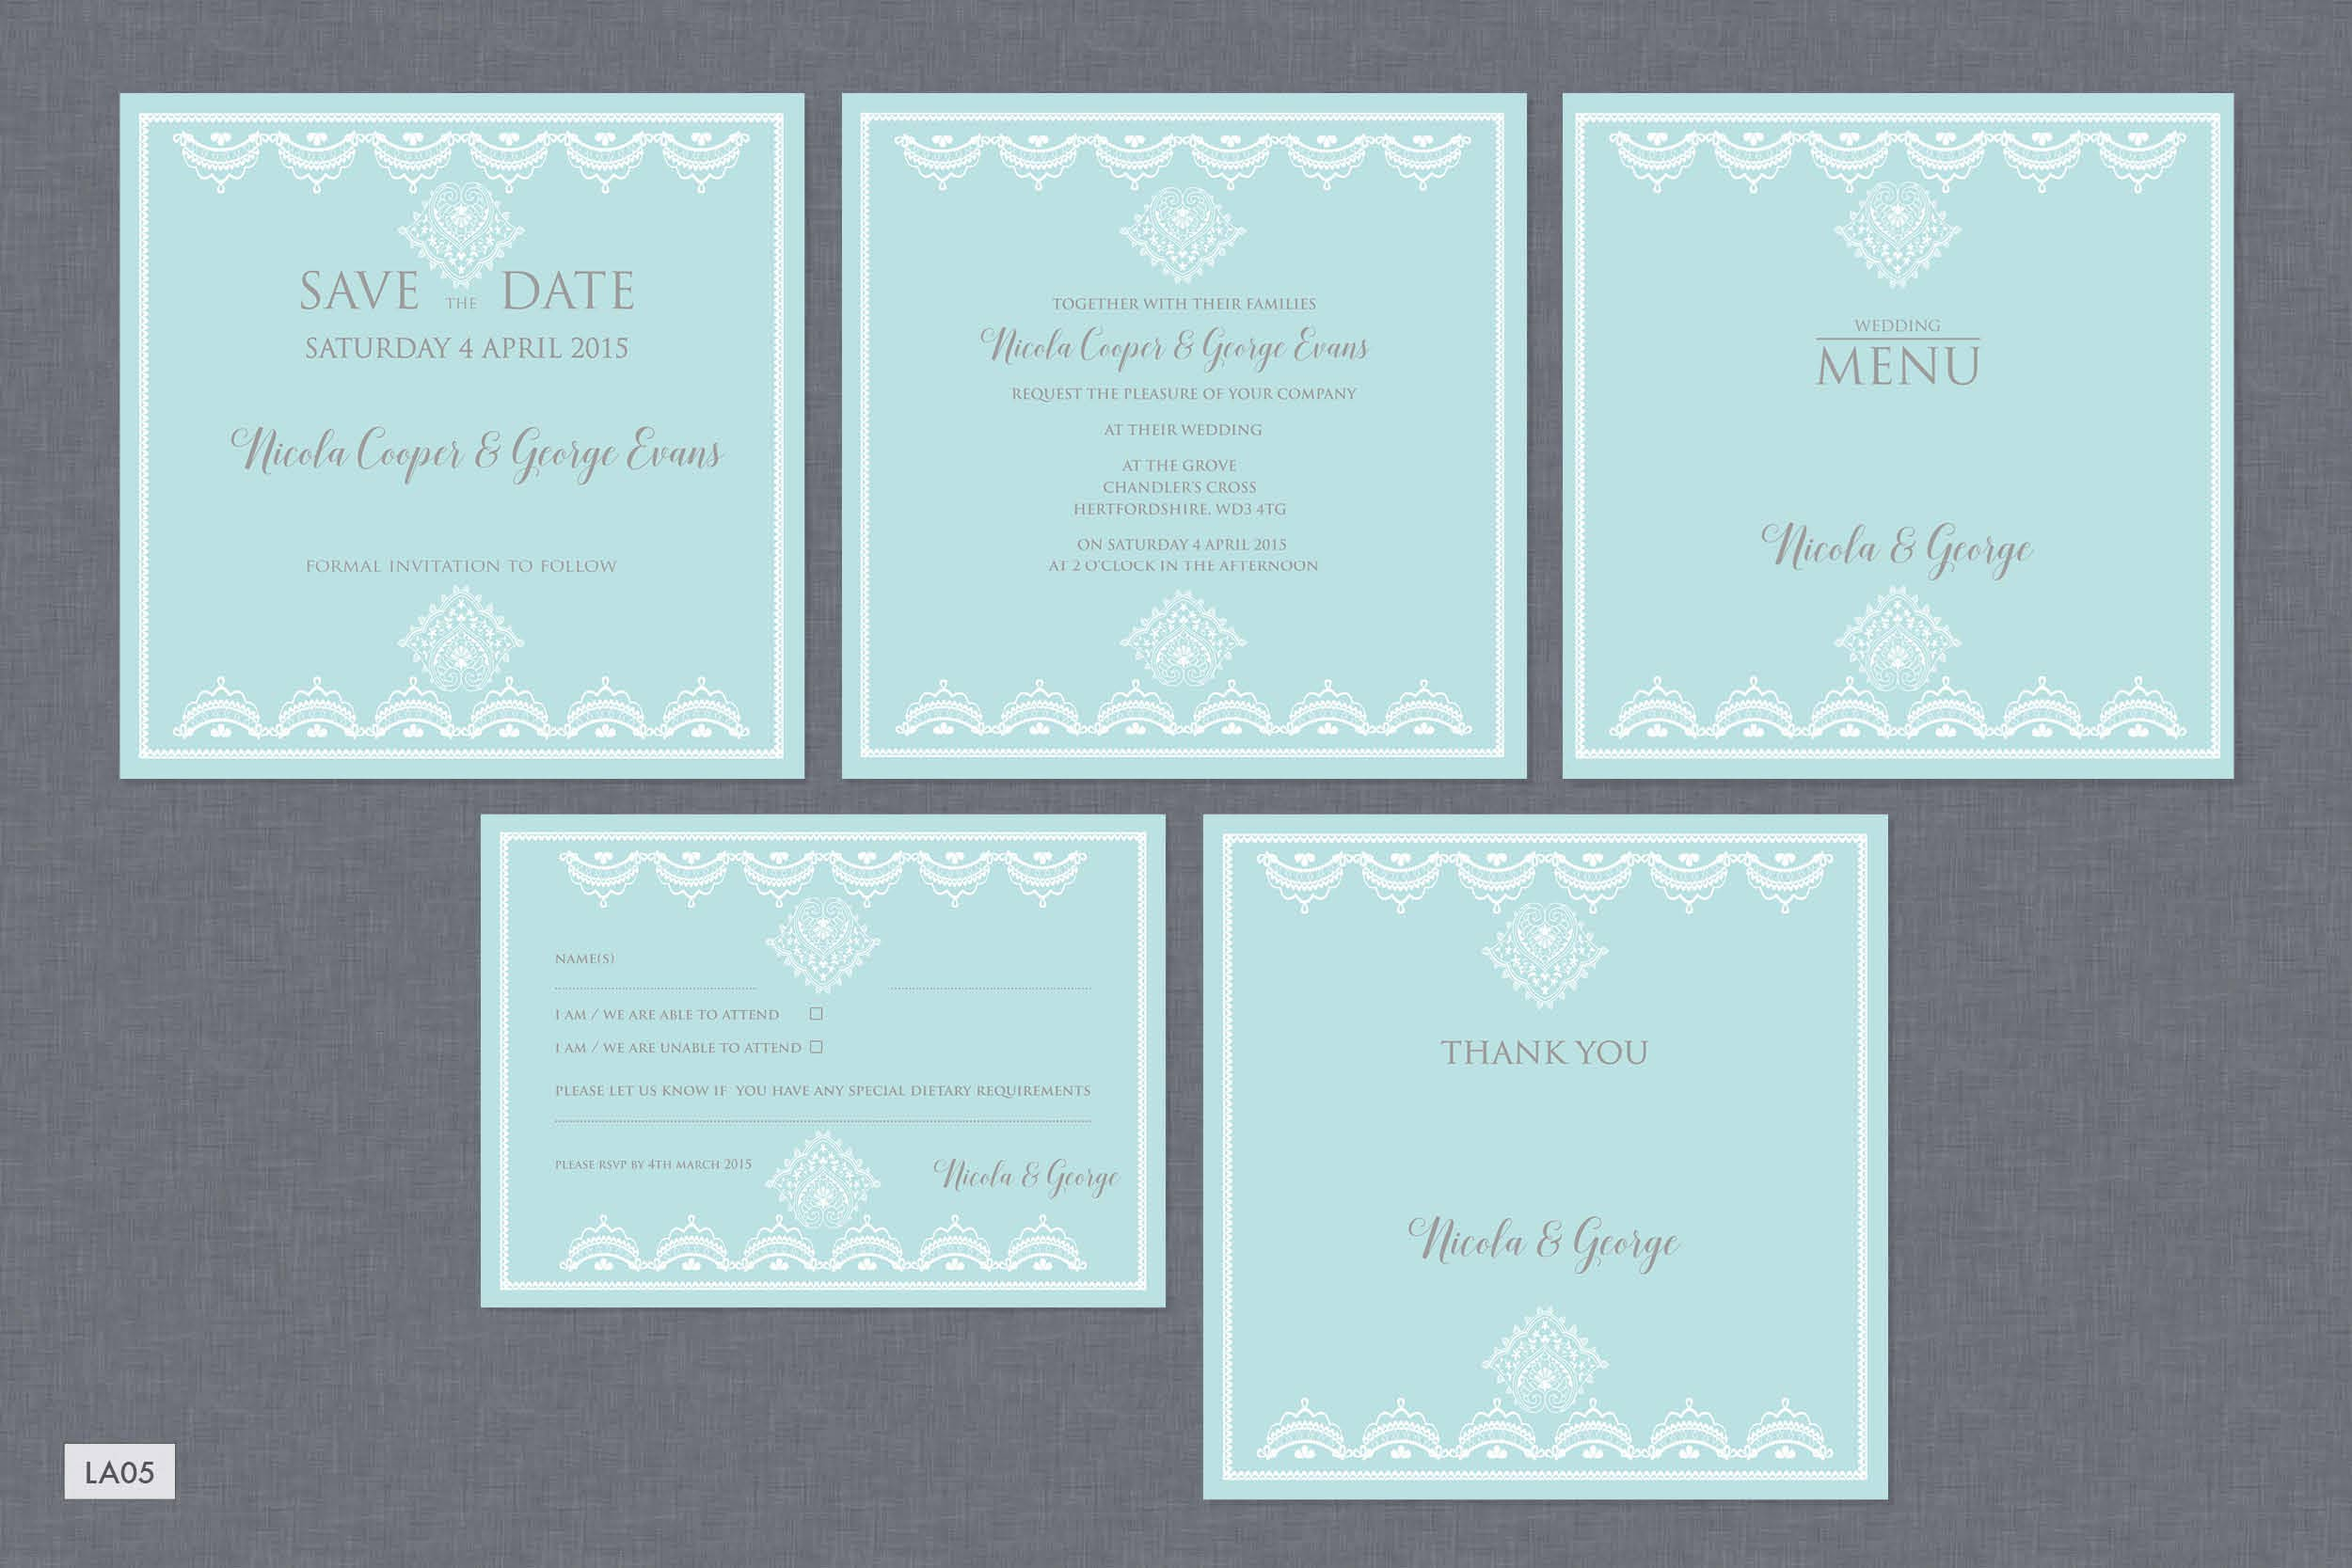 ananya-wedding-stationery-lace21.jpg